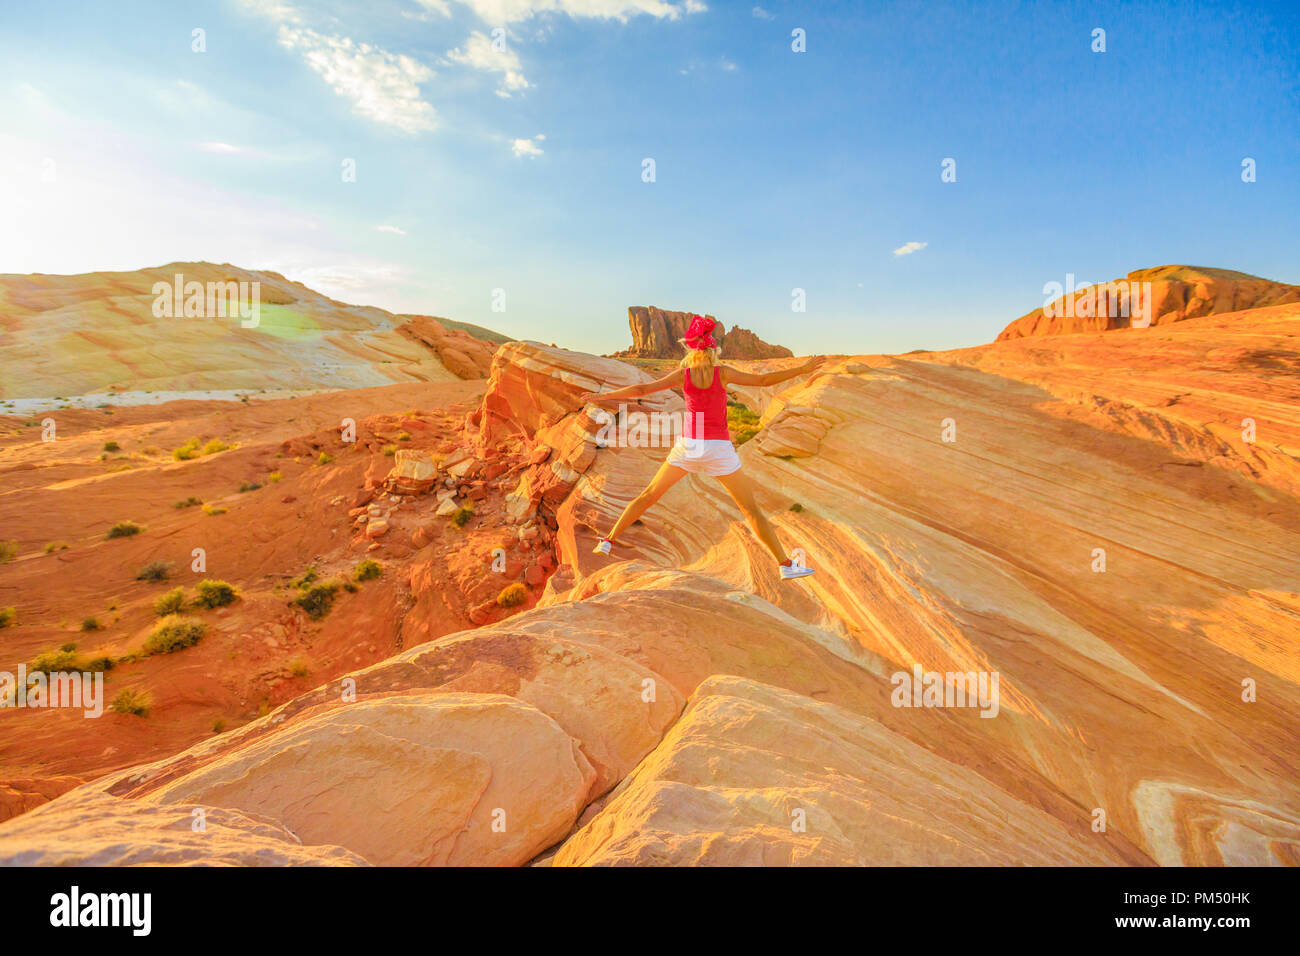 Young tourist girl jumping over Fire Wave in Valley of Fire, Nevada, USA, at red sunset. Happy hiker enjoying view of popular striped lines around the lip of Fire Wave. Gibraltar rock on background. Stock Photo